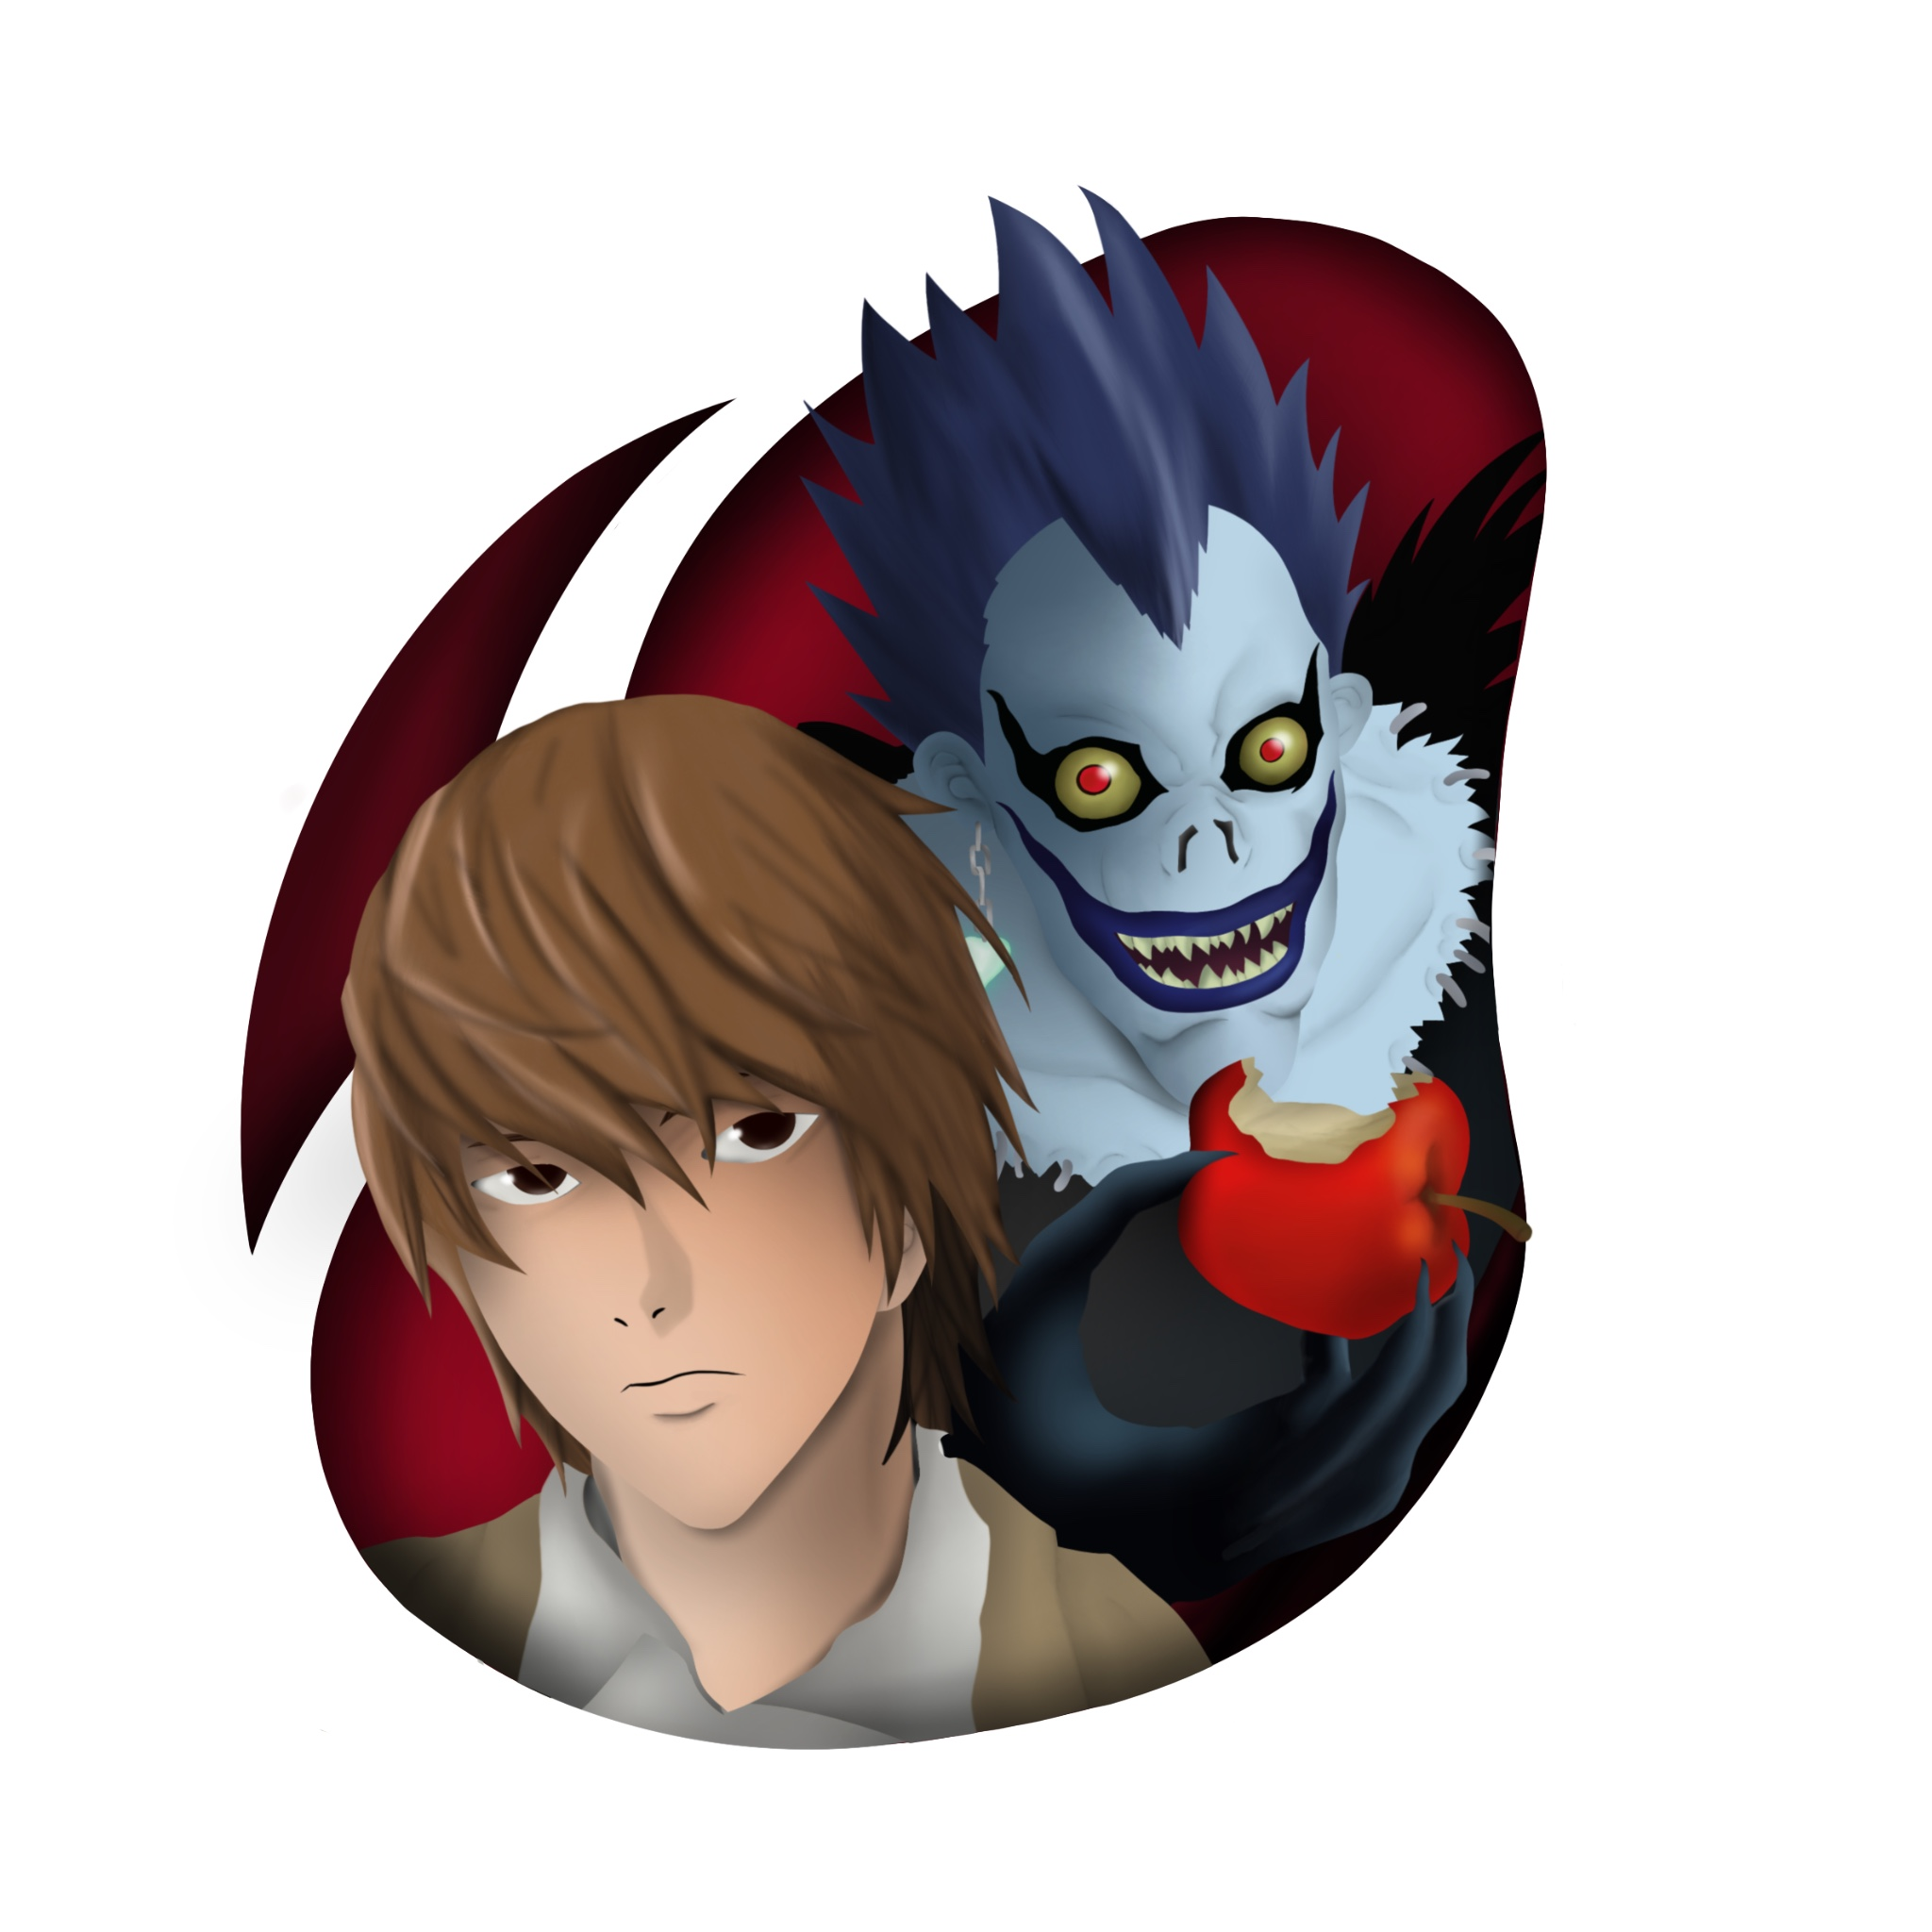 An illustration of Light Yagami and Ryuk from the famous anime Death Note.